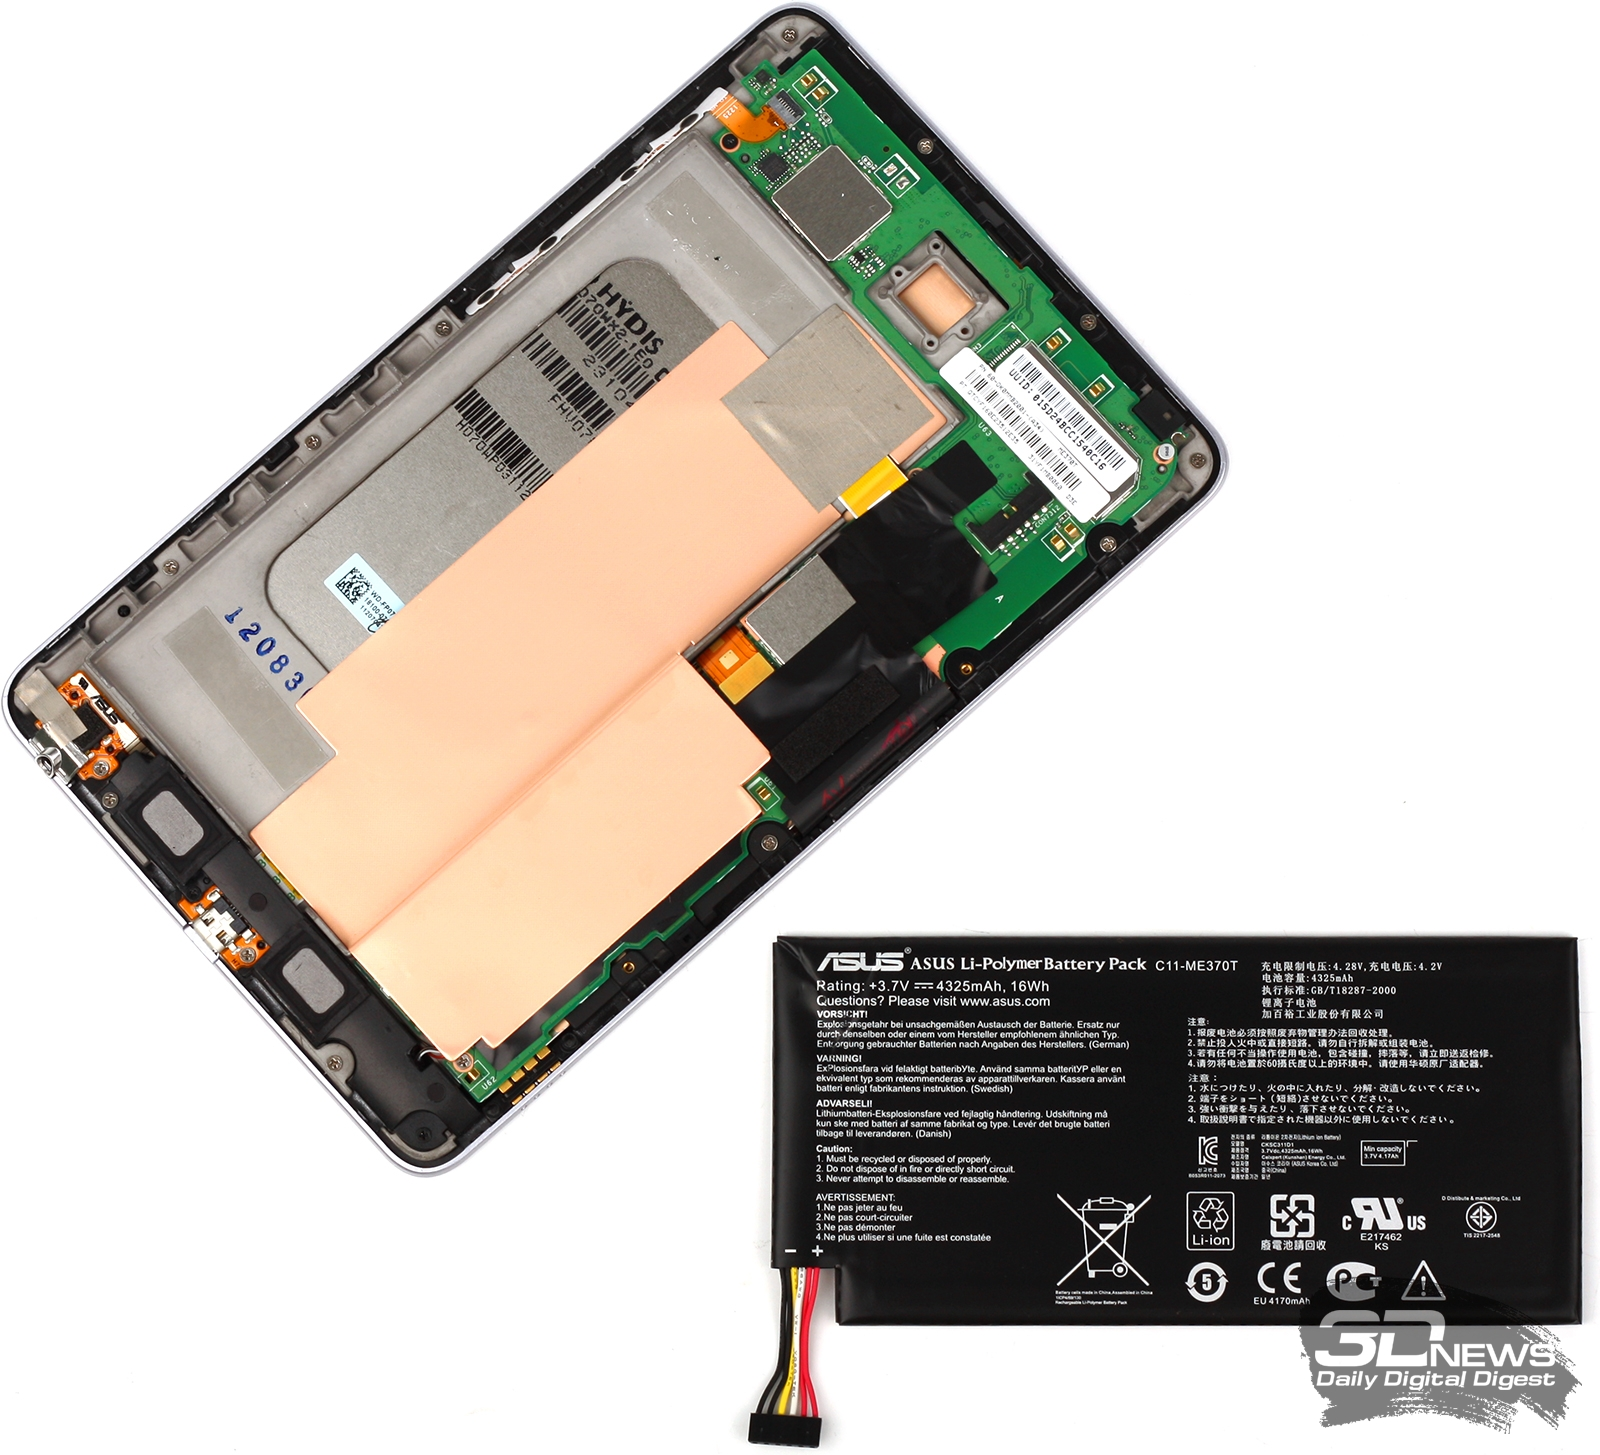 Asus Google Nexus 7 Circuit Diagram 9 Hd